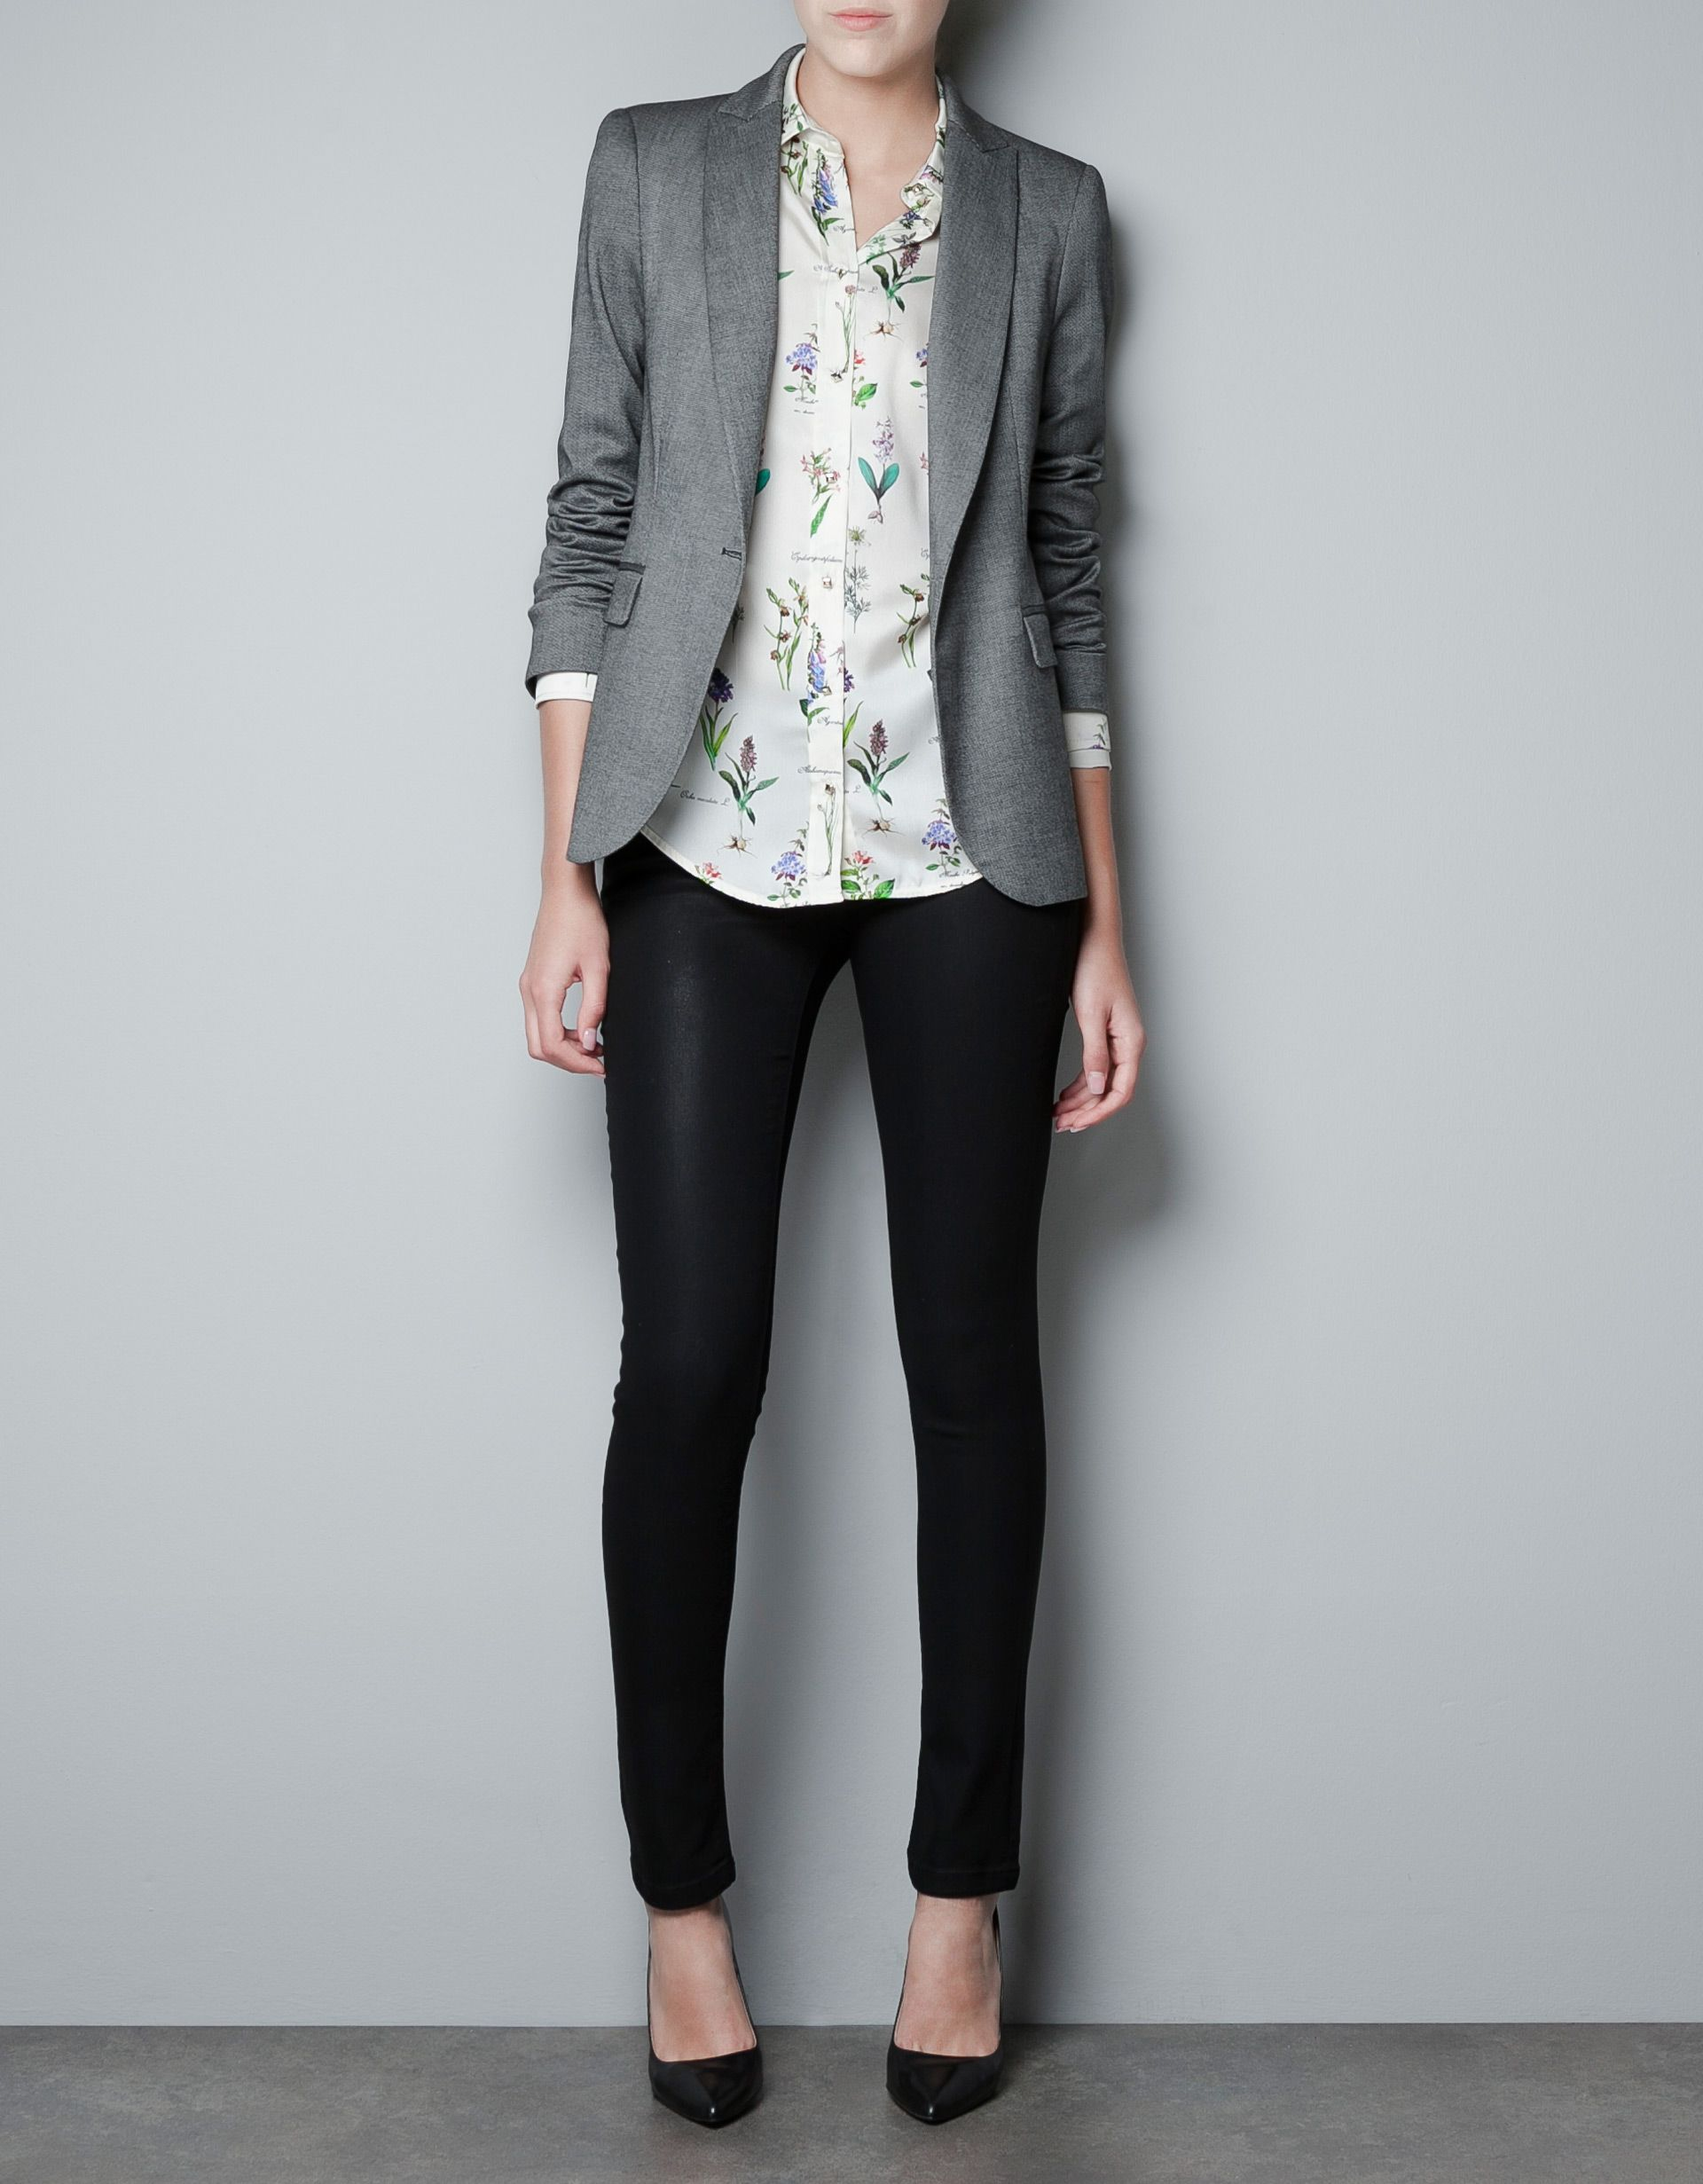 Fantastic Popular Black Suit Jacket With Grey PantsBuy Cheap Black Suit Jacket